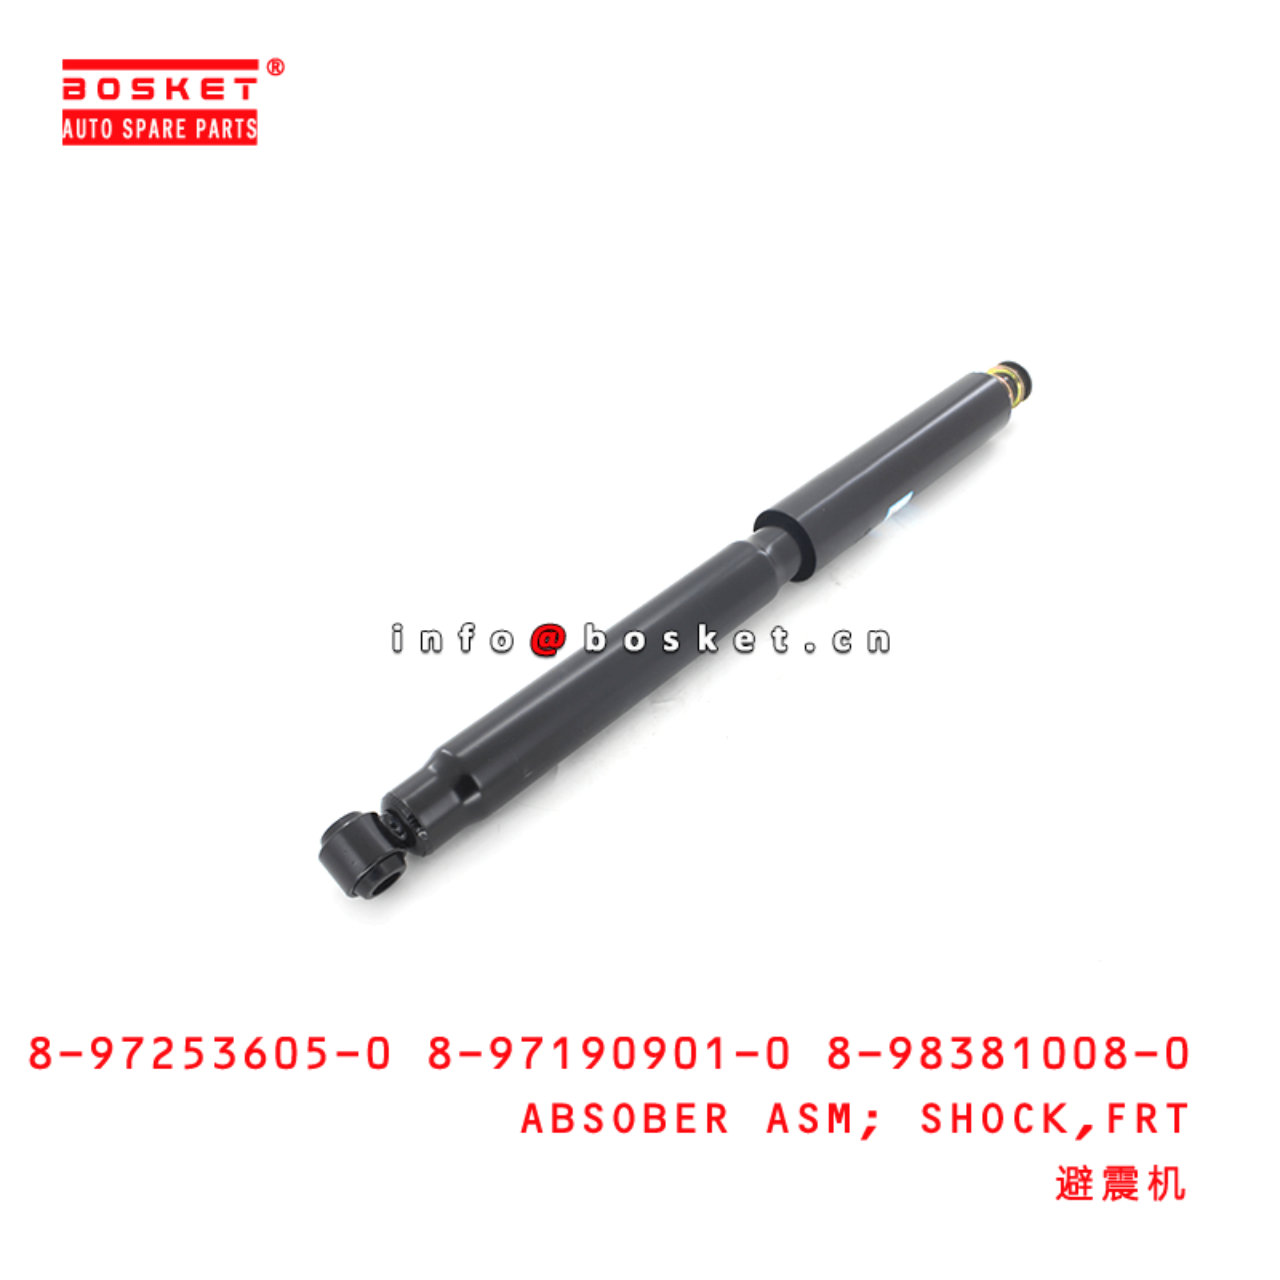 8-97253605-0 8-97190901-0 8-98381008-0 Front Shock Absober Assembly Suitable for ISUZU 600P 100P